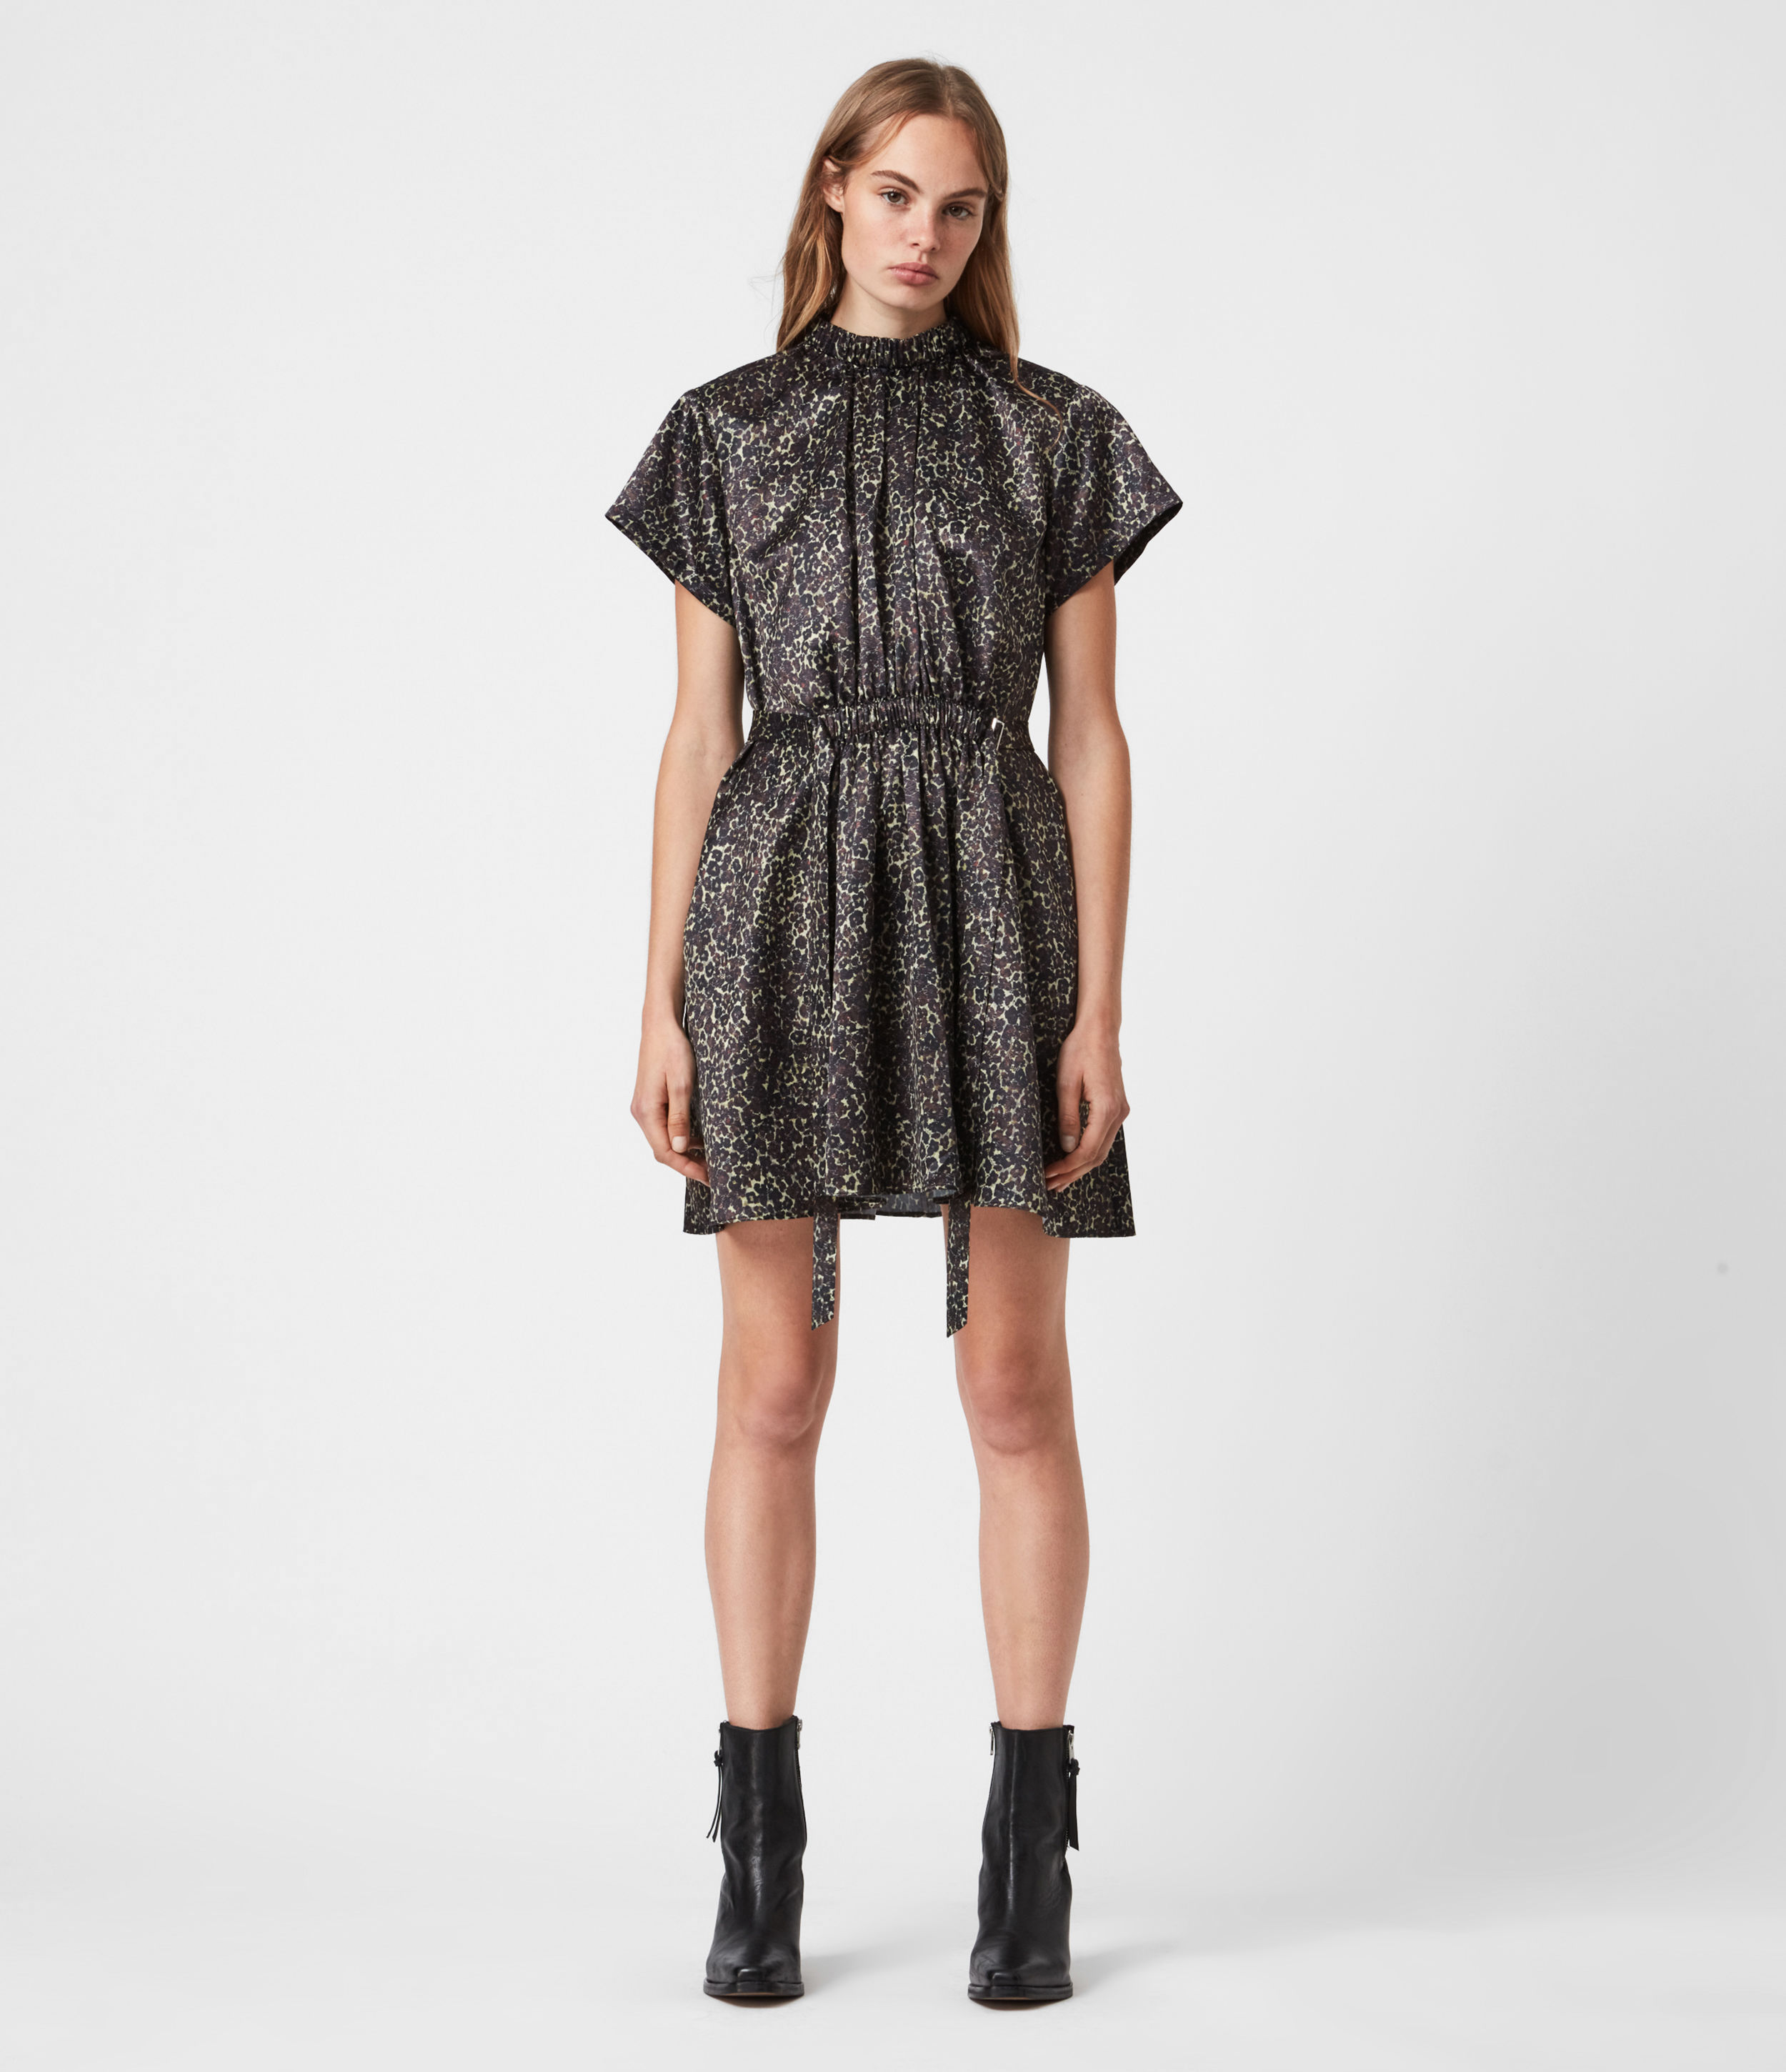 AllSaints Erin Lee Dress